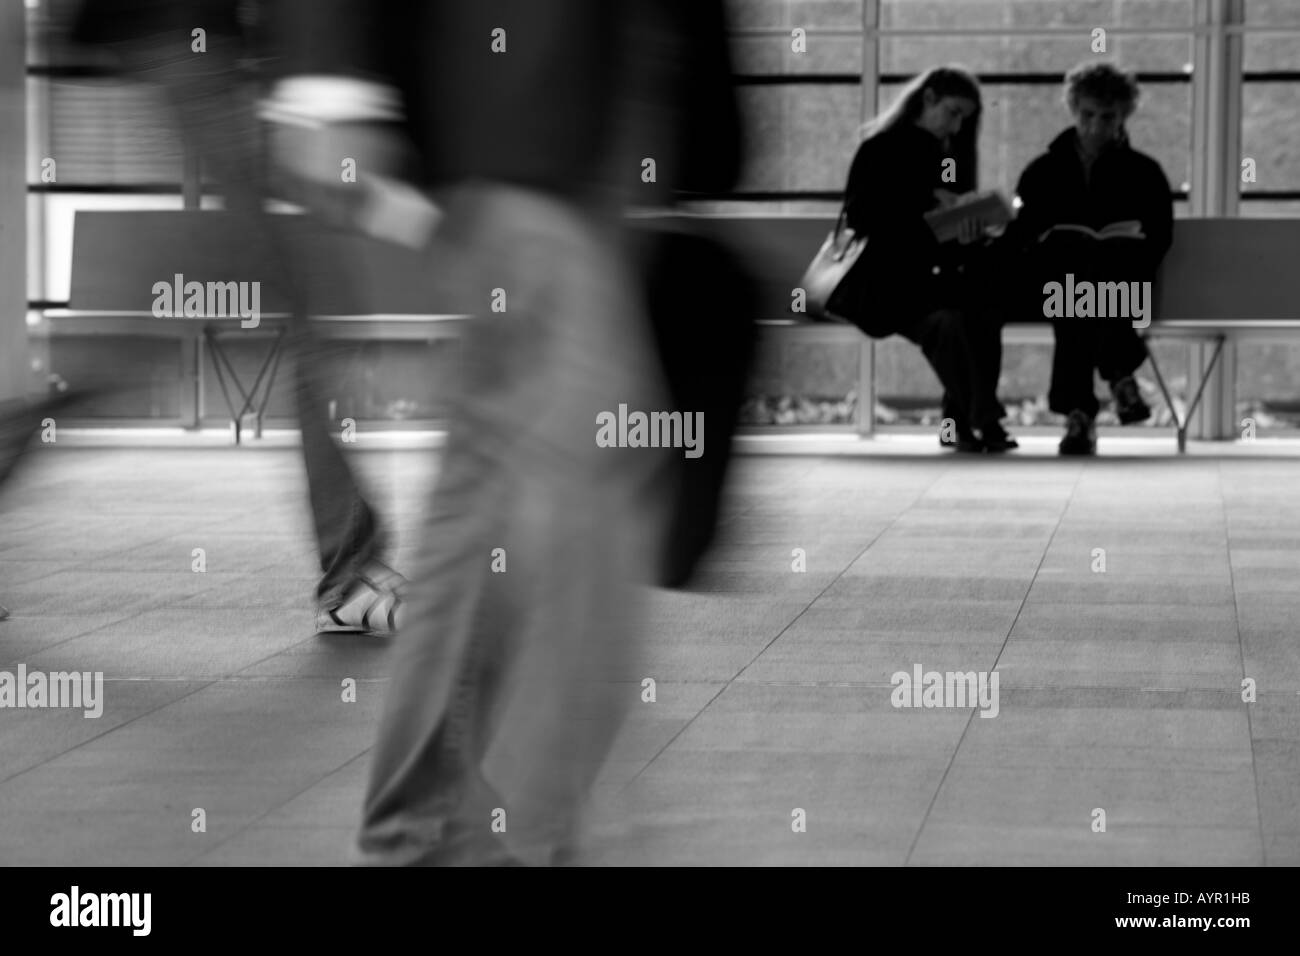 Man with a bag walking through a business  recaption - Stock Image